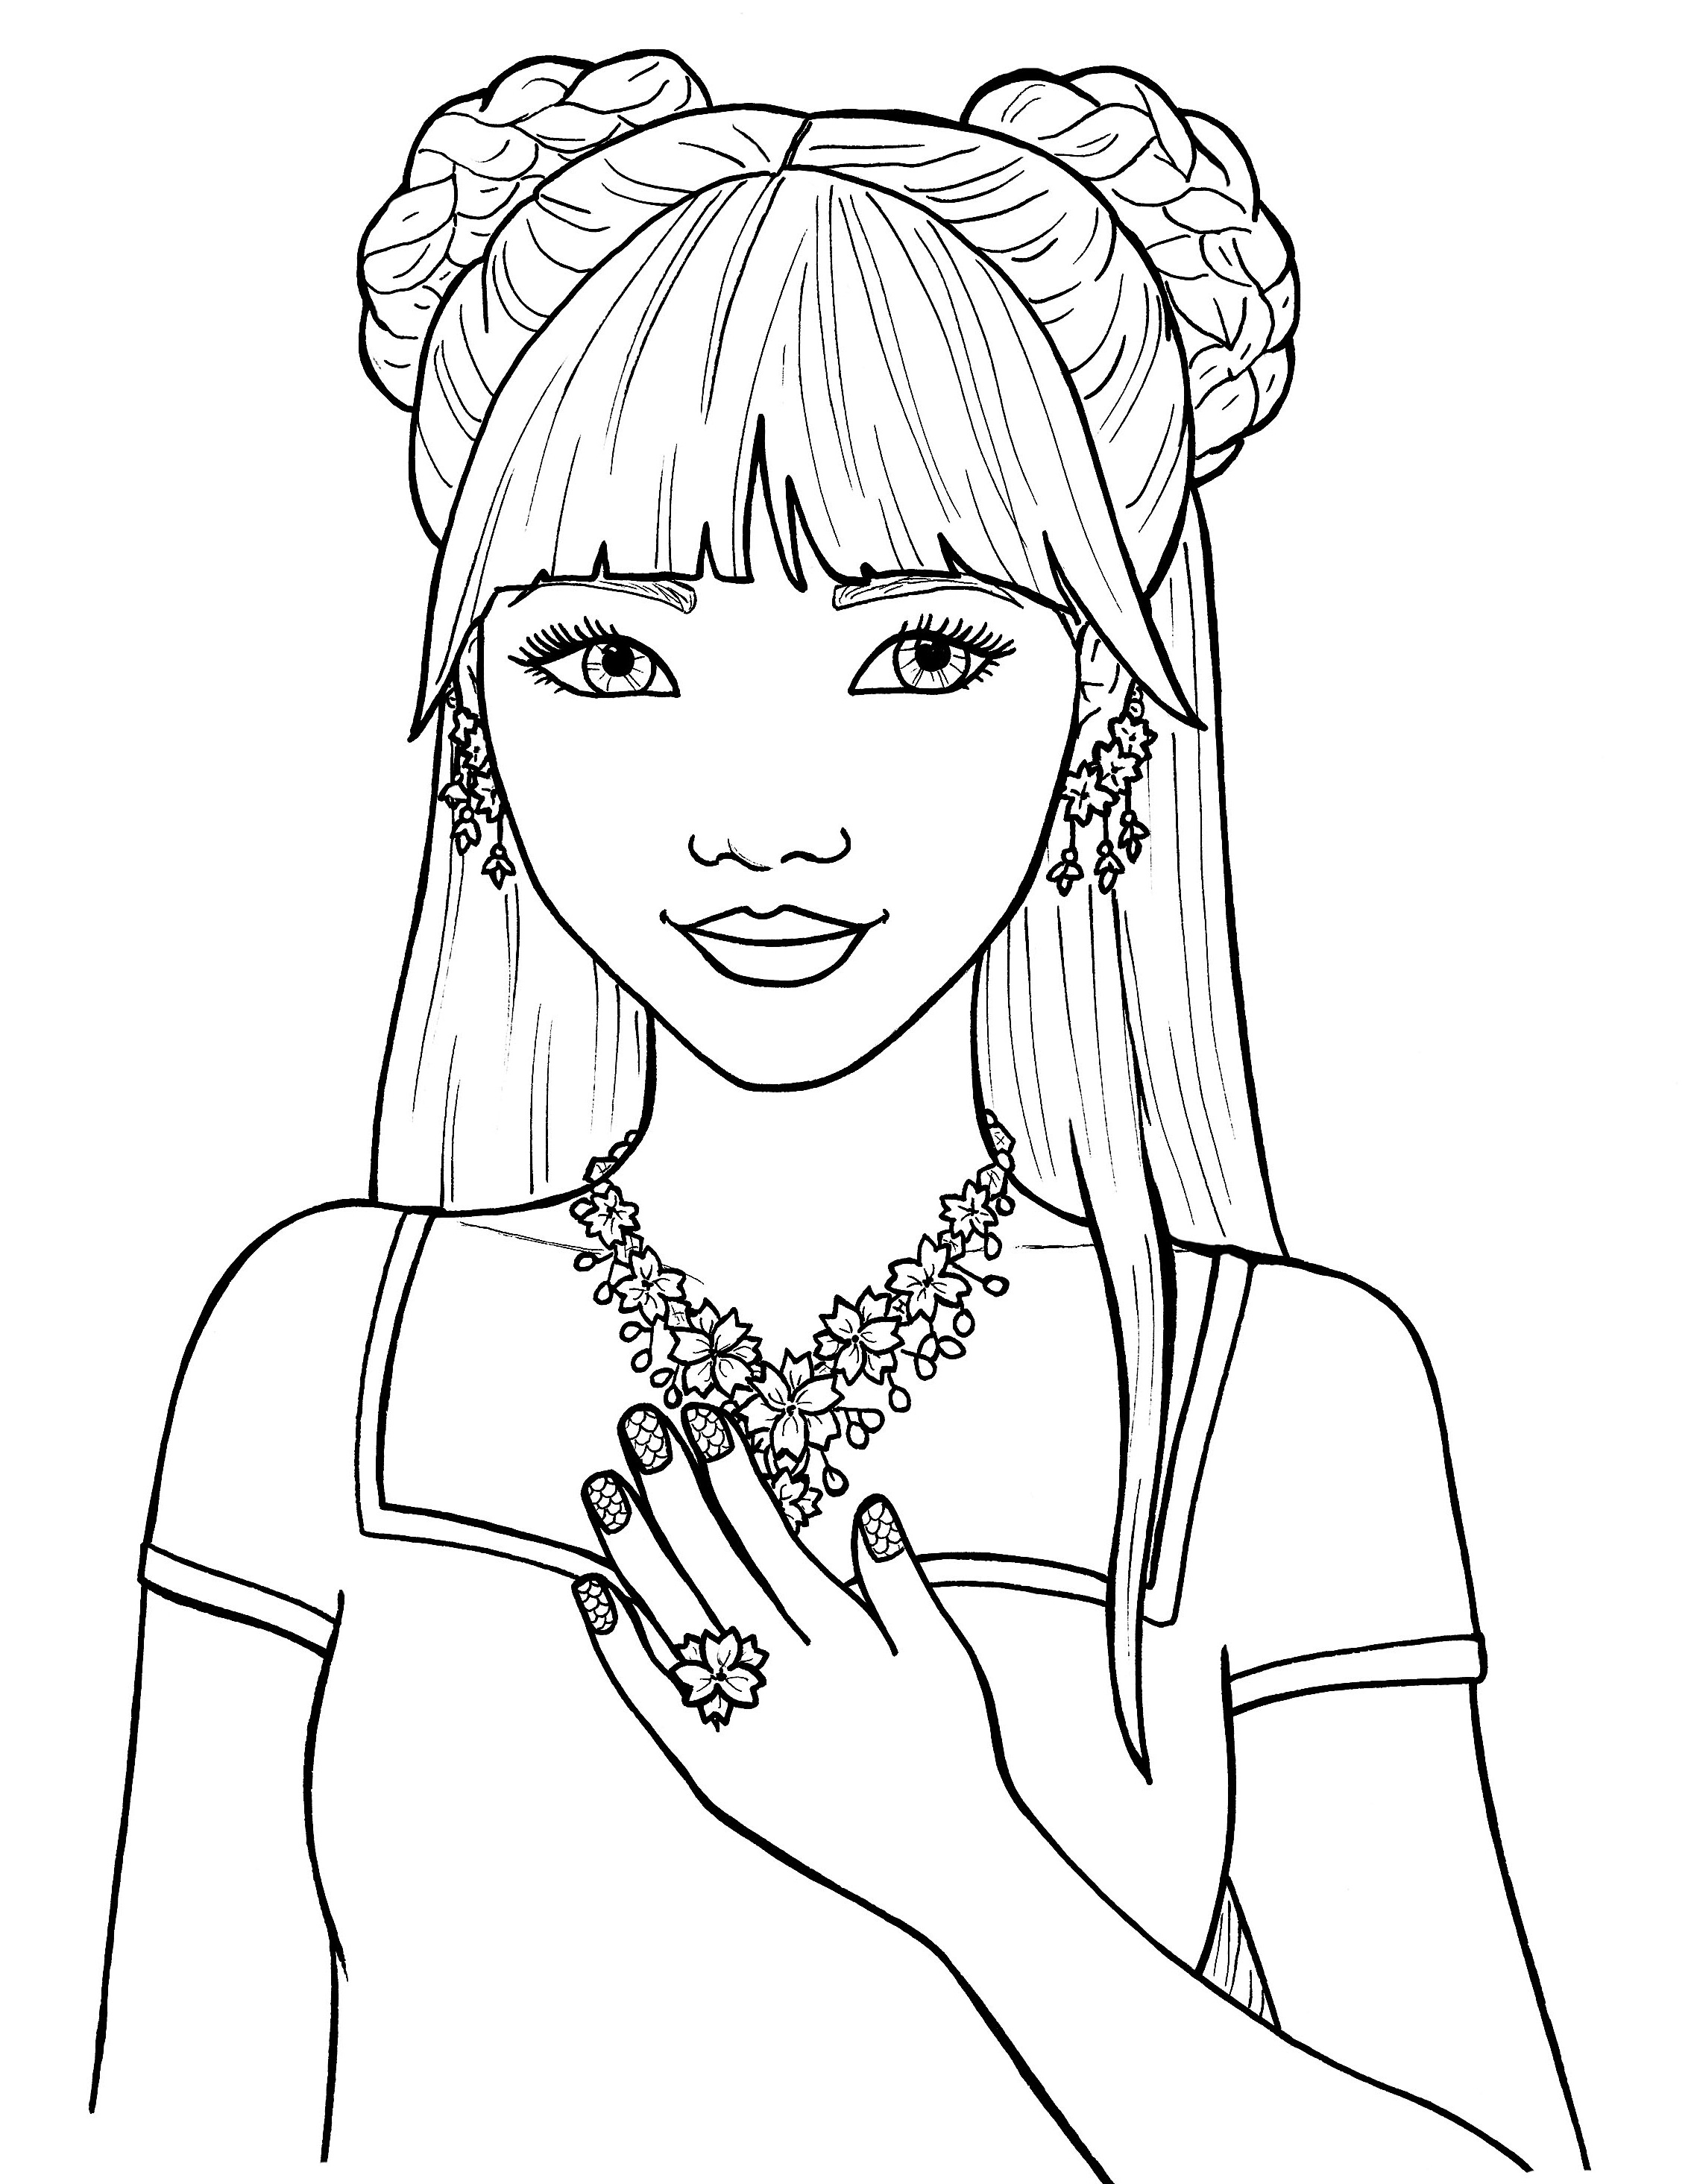 girls coloring adult coloring page girl portrait and leaves colouring coloring girls